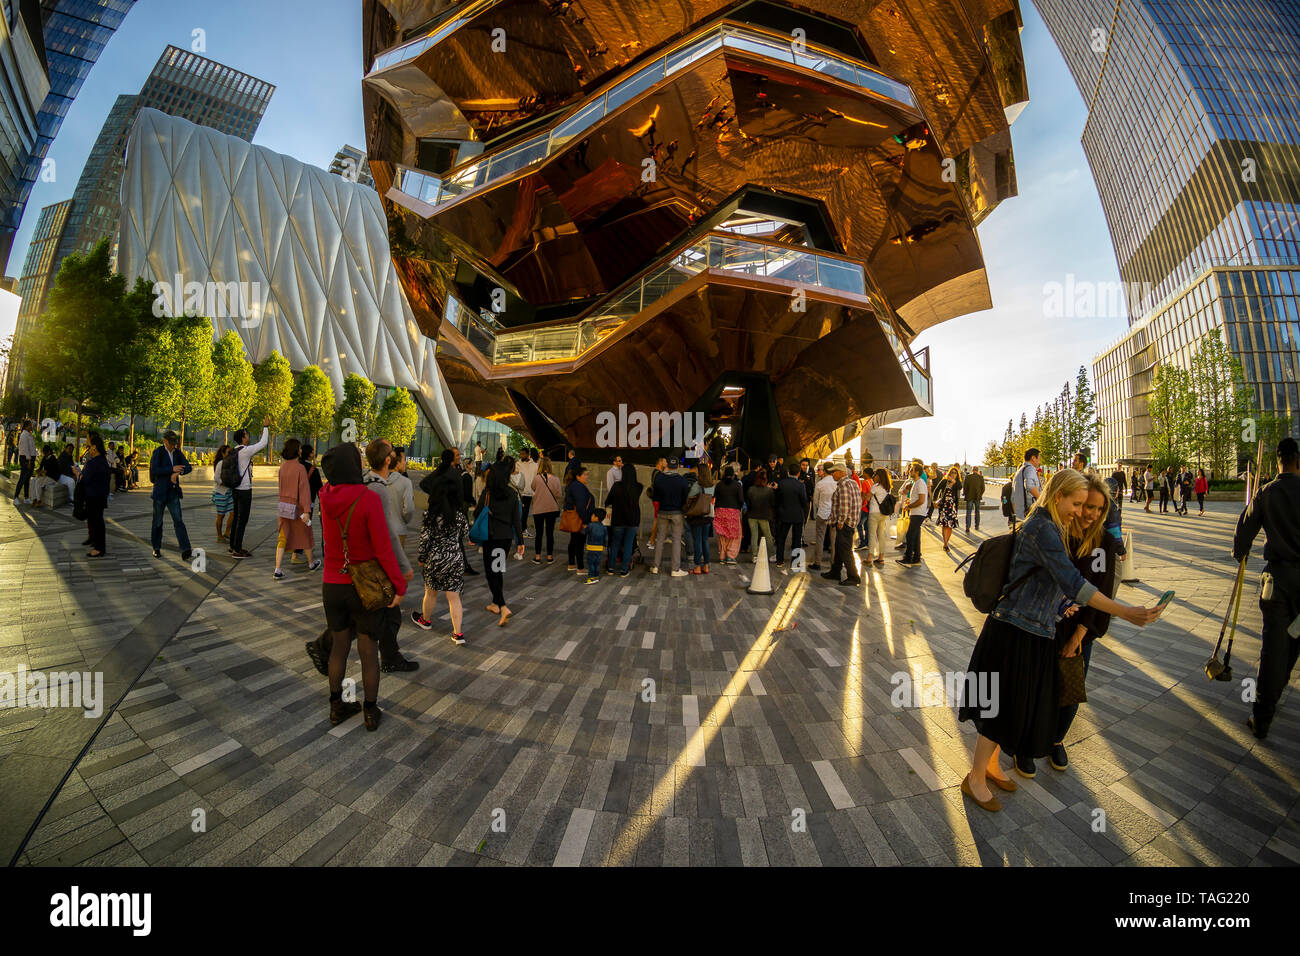 Hordes of visitors flock to Hudson Yards and The Vessel in New York on Tuesday, May 21, 2019. Retailers, including the Neiman Marcus department store, opened their shops in the development which was built on a platform over the West Side railroad yards. Office, residential, public space and retail space comprise the first phase in what is arguably the most expensive construction project ever built in the U.S.   (© Richard B. Levine) Stock Photo